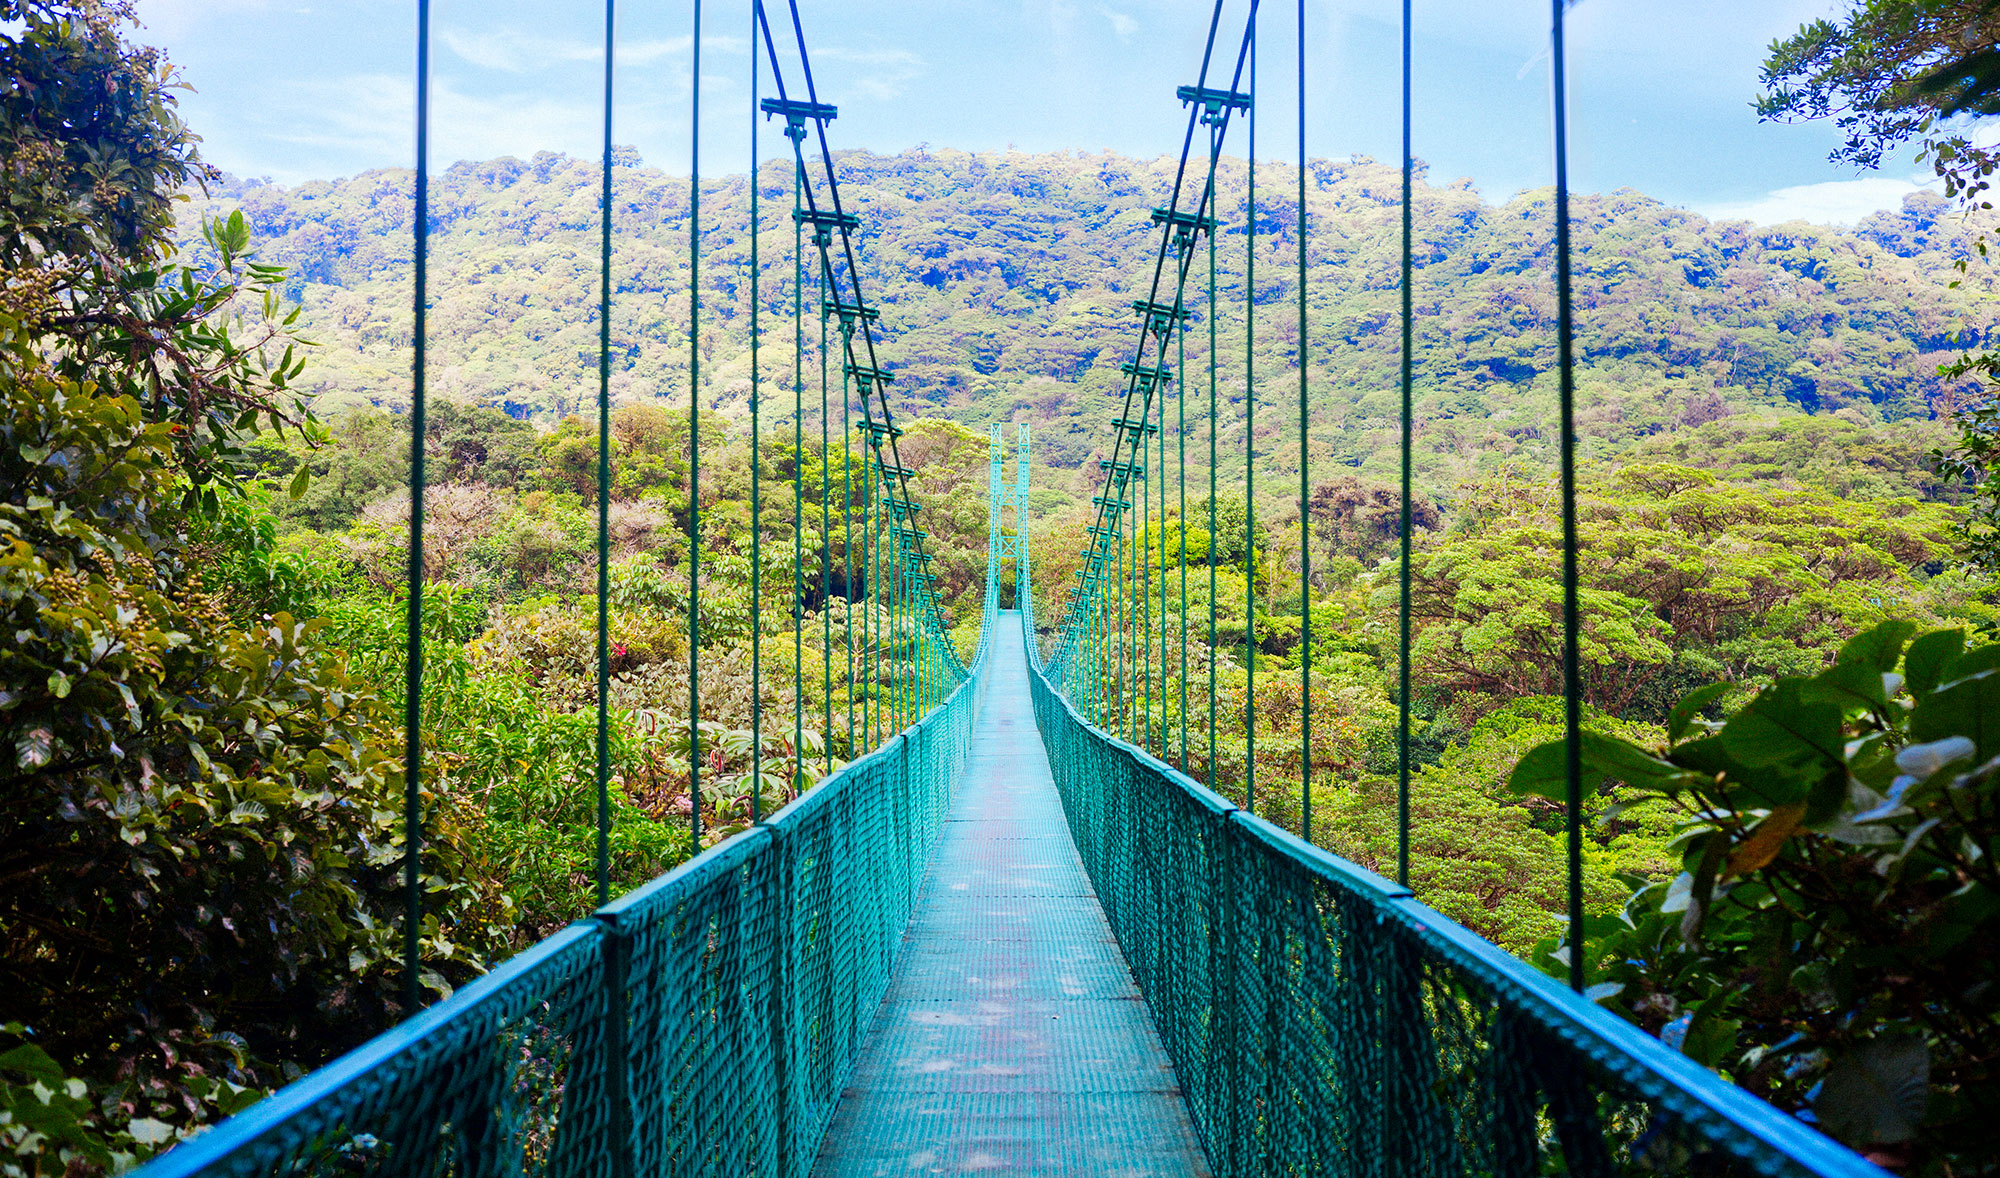 View of pedestrian suspension bridge in the jungle of Costa Rica.